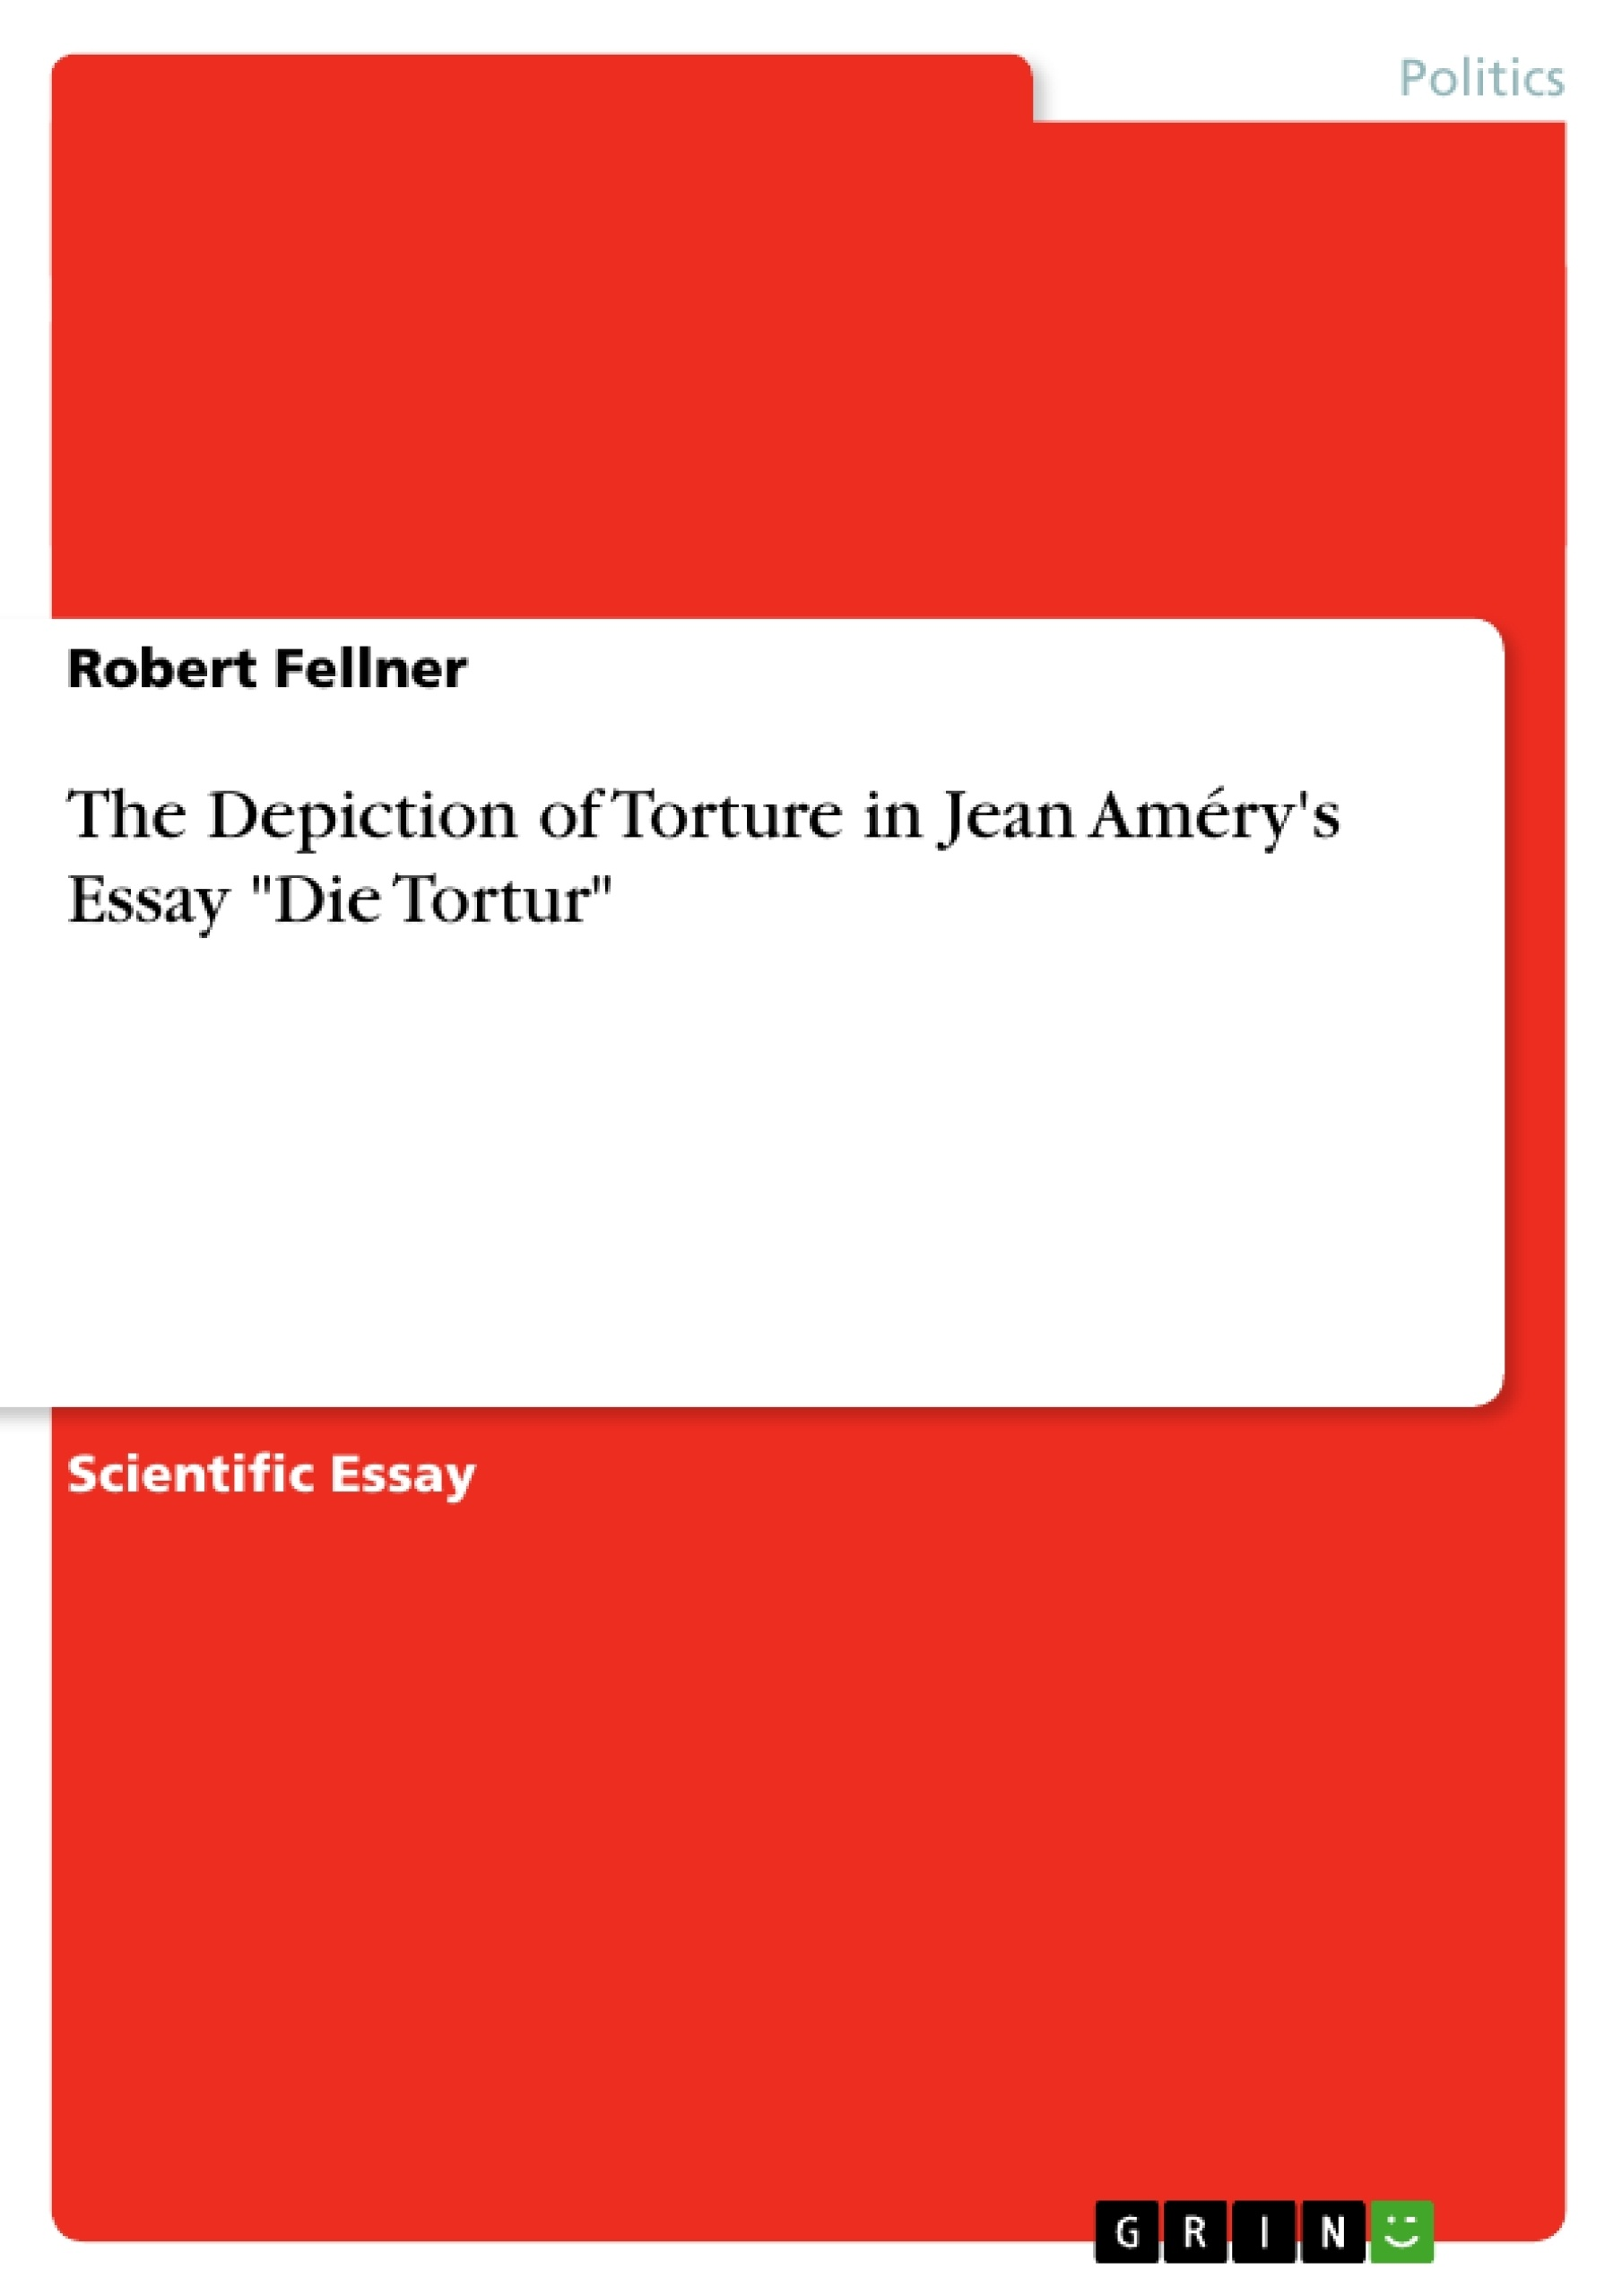 torture essays writing a law essay law essays examples examples of  the depiction of torture in jean am eacute ry s essay die tortur the depiction of